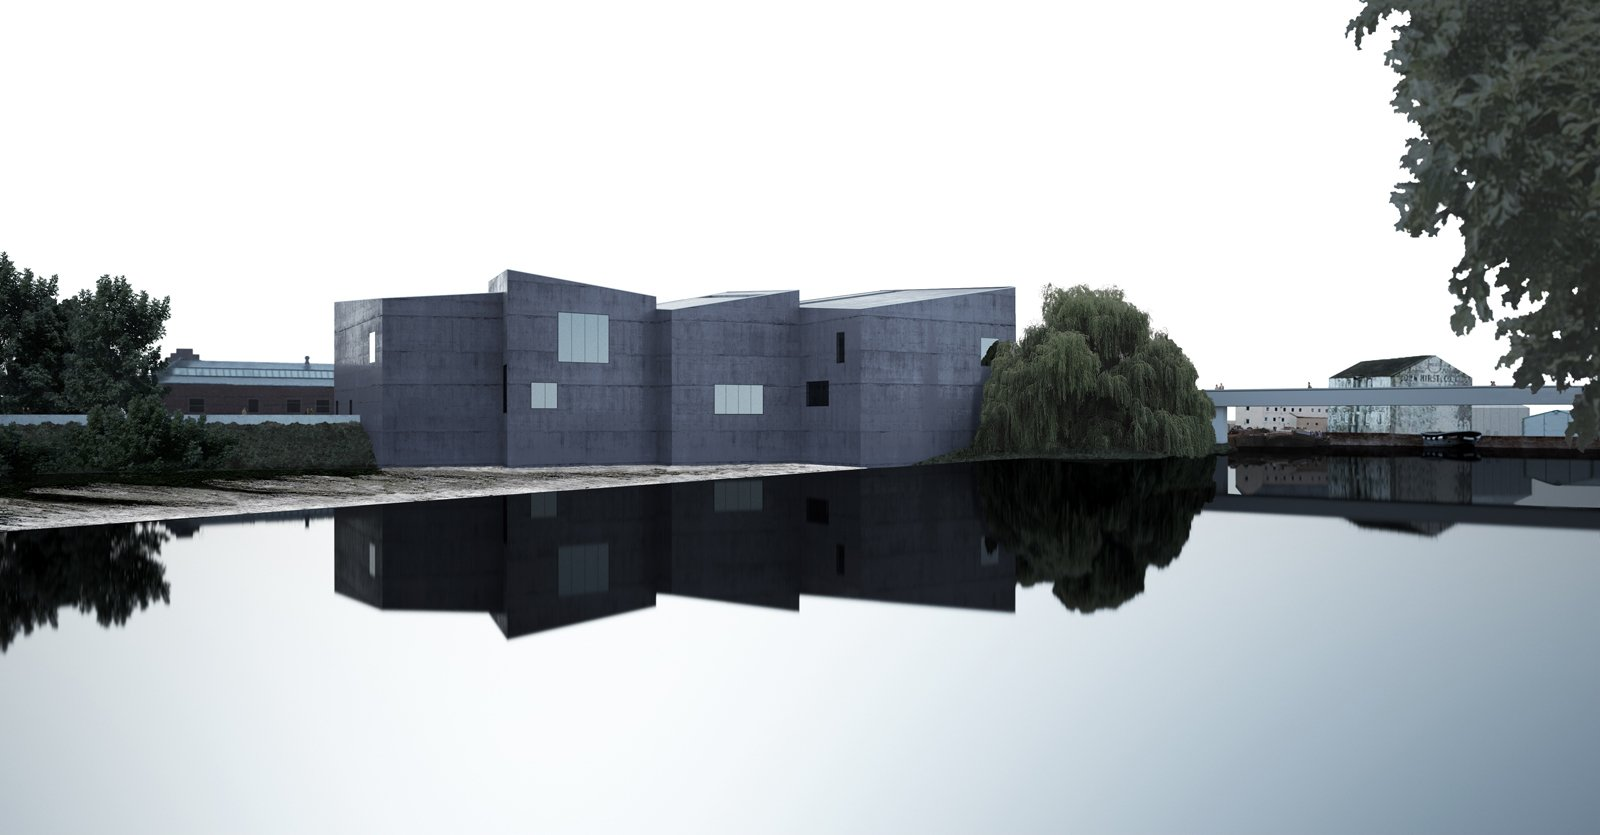 Image of The Hepworth Wakefield from the David Chipperfield: Form Matters exhibition, on view at the Design Museum through January 31, 2010. Photo courtesy of David Chipperfield Architects and the Design Museum.  Photo 7 of 15 in Events this Weekend: 1.28-1.31